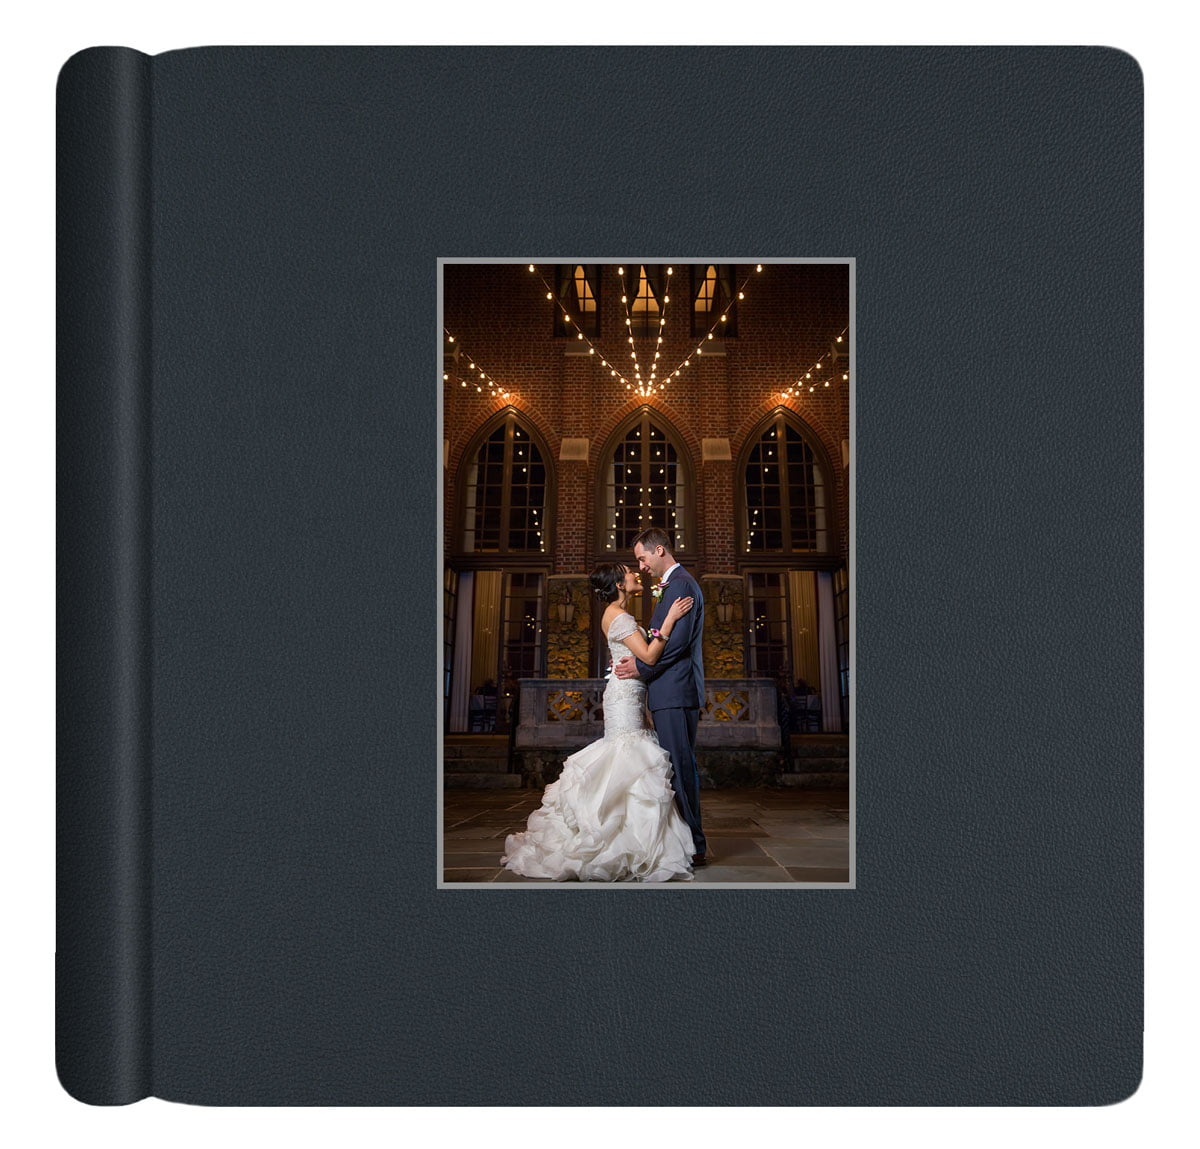 Zookbinders – Matted Album with Cameo